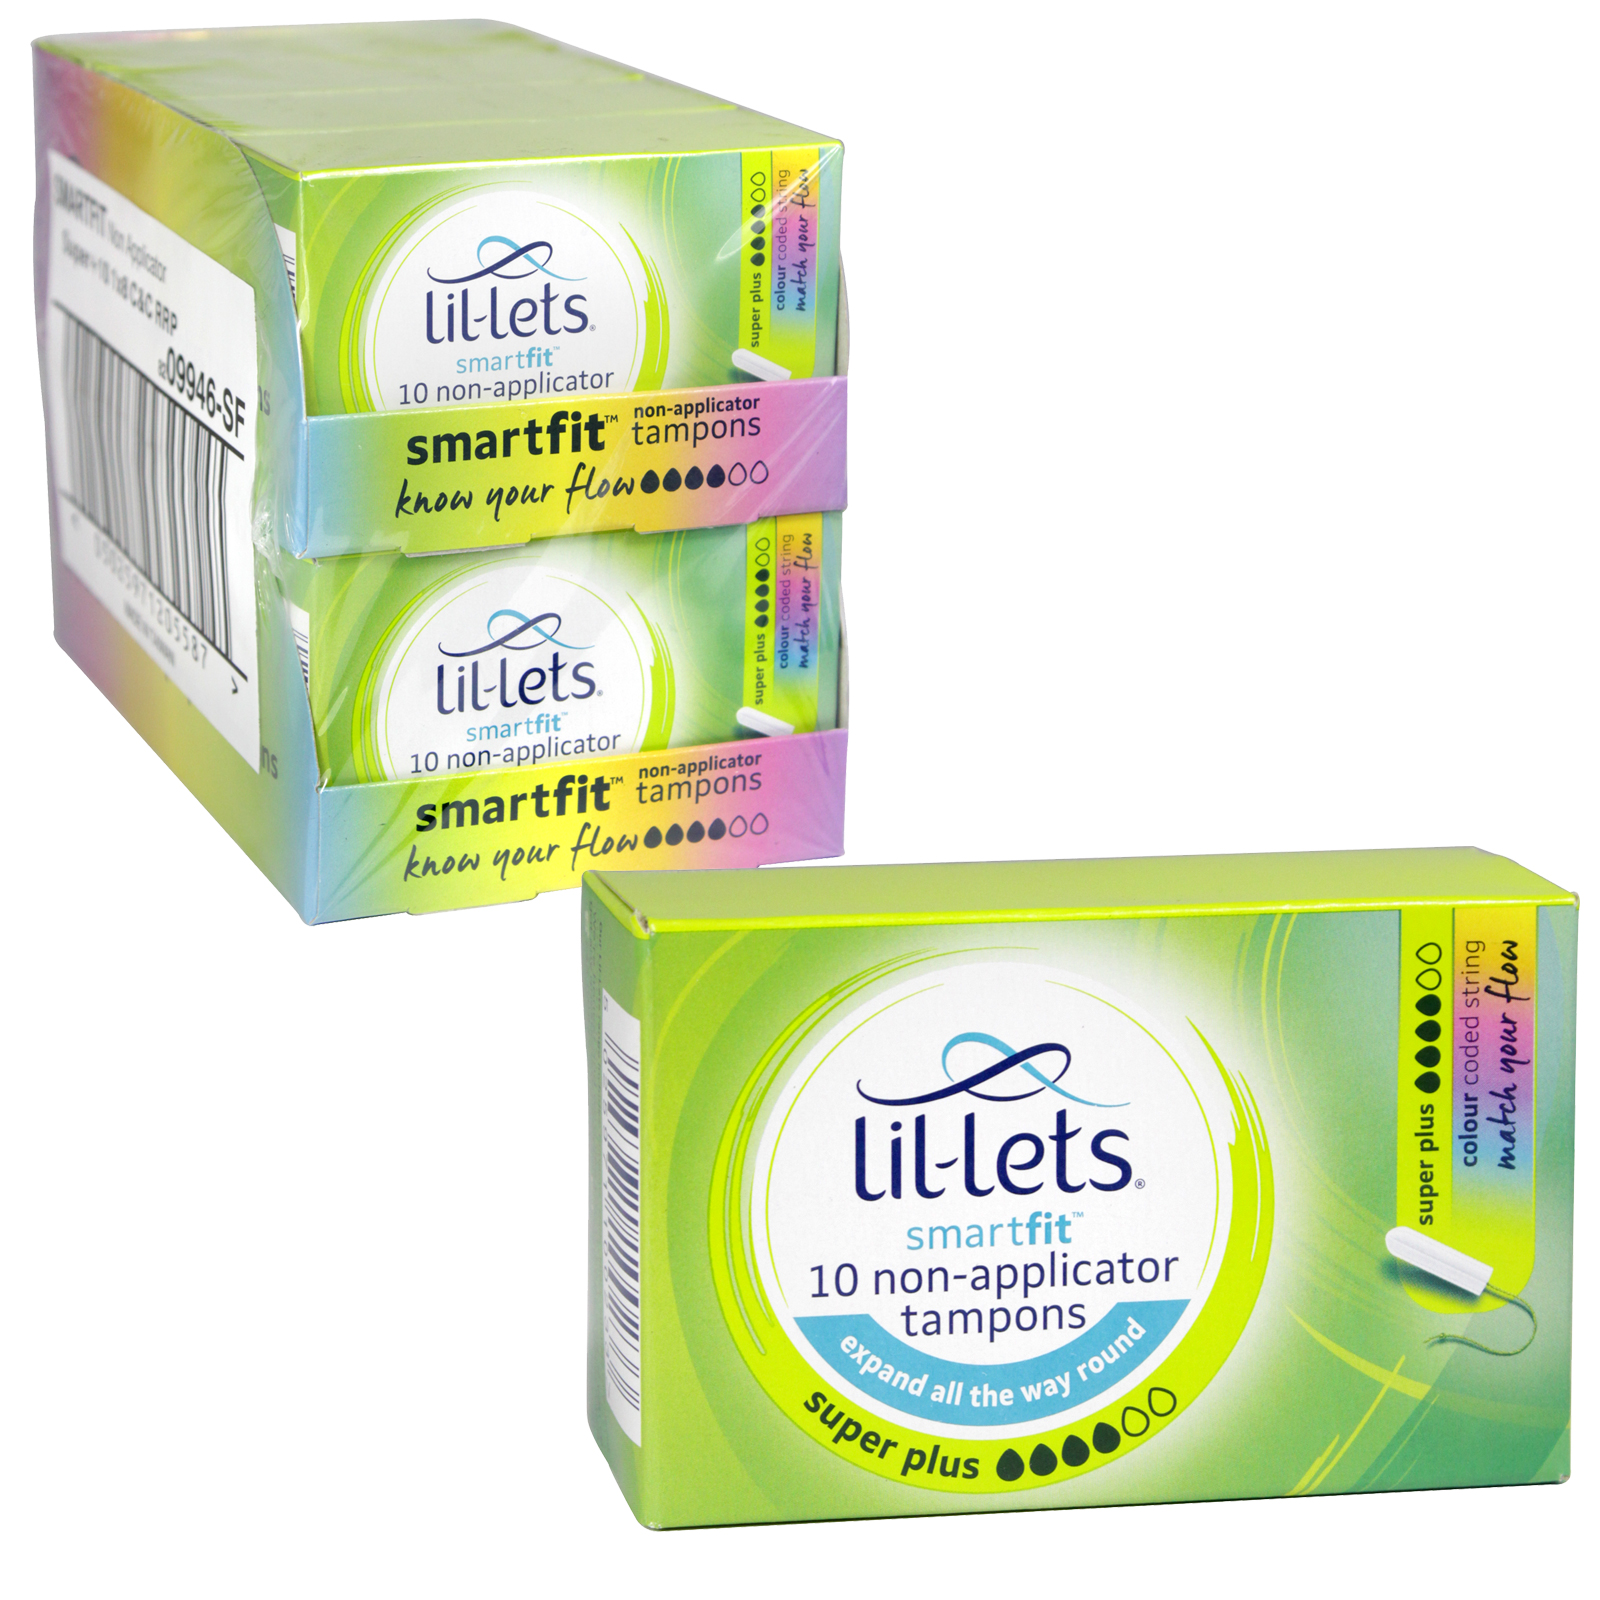 LIL-LETS DIGITAL TAMPONS 10S SUPER PLUS X8